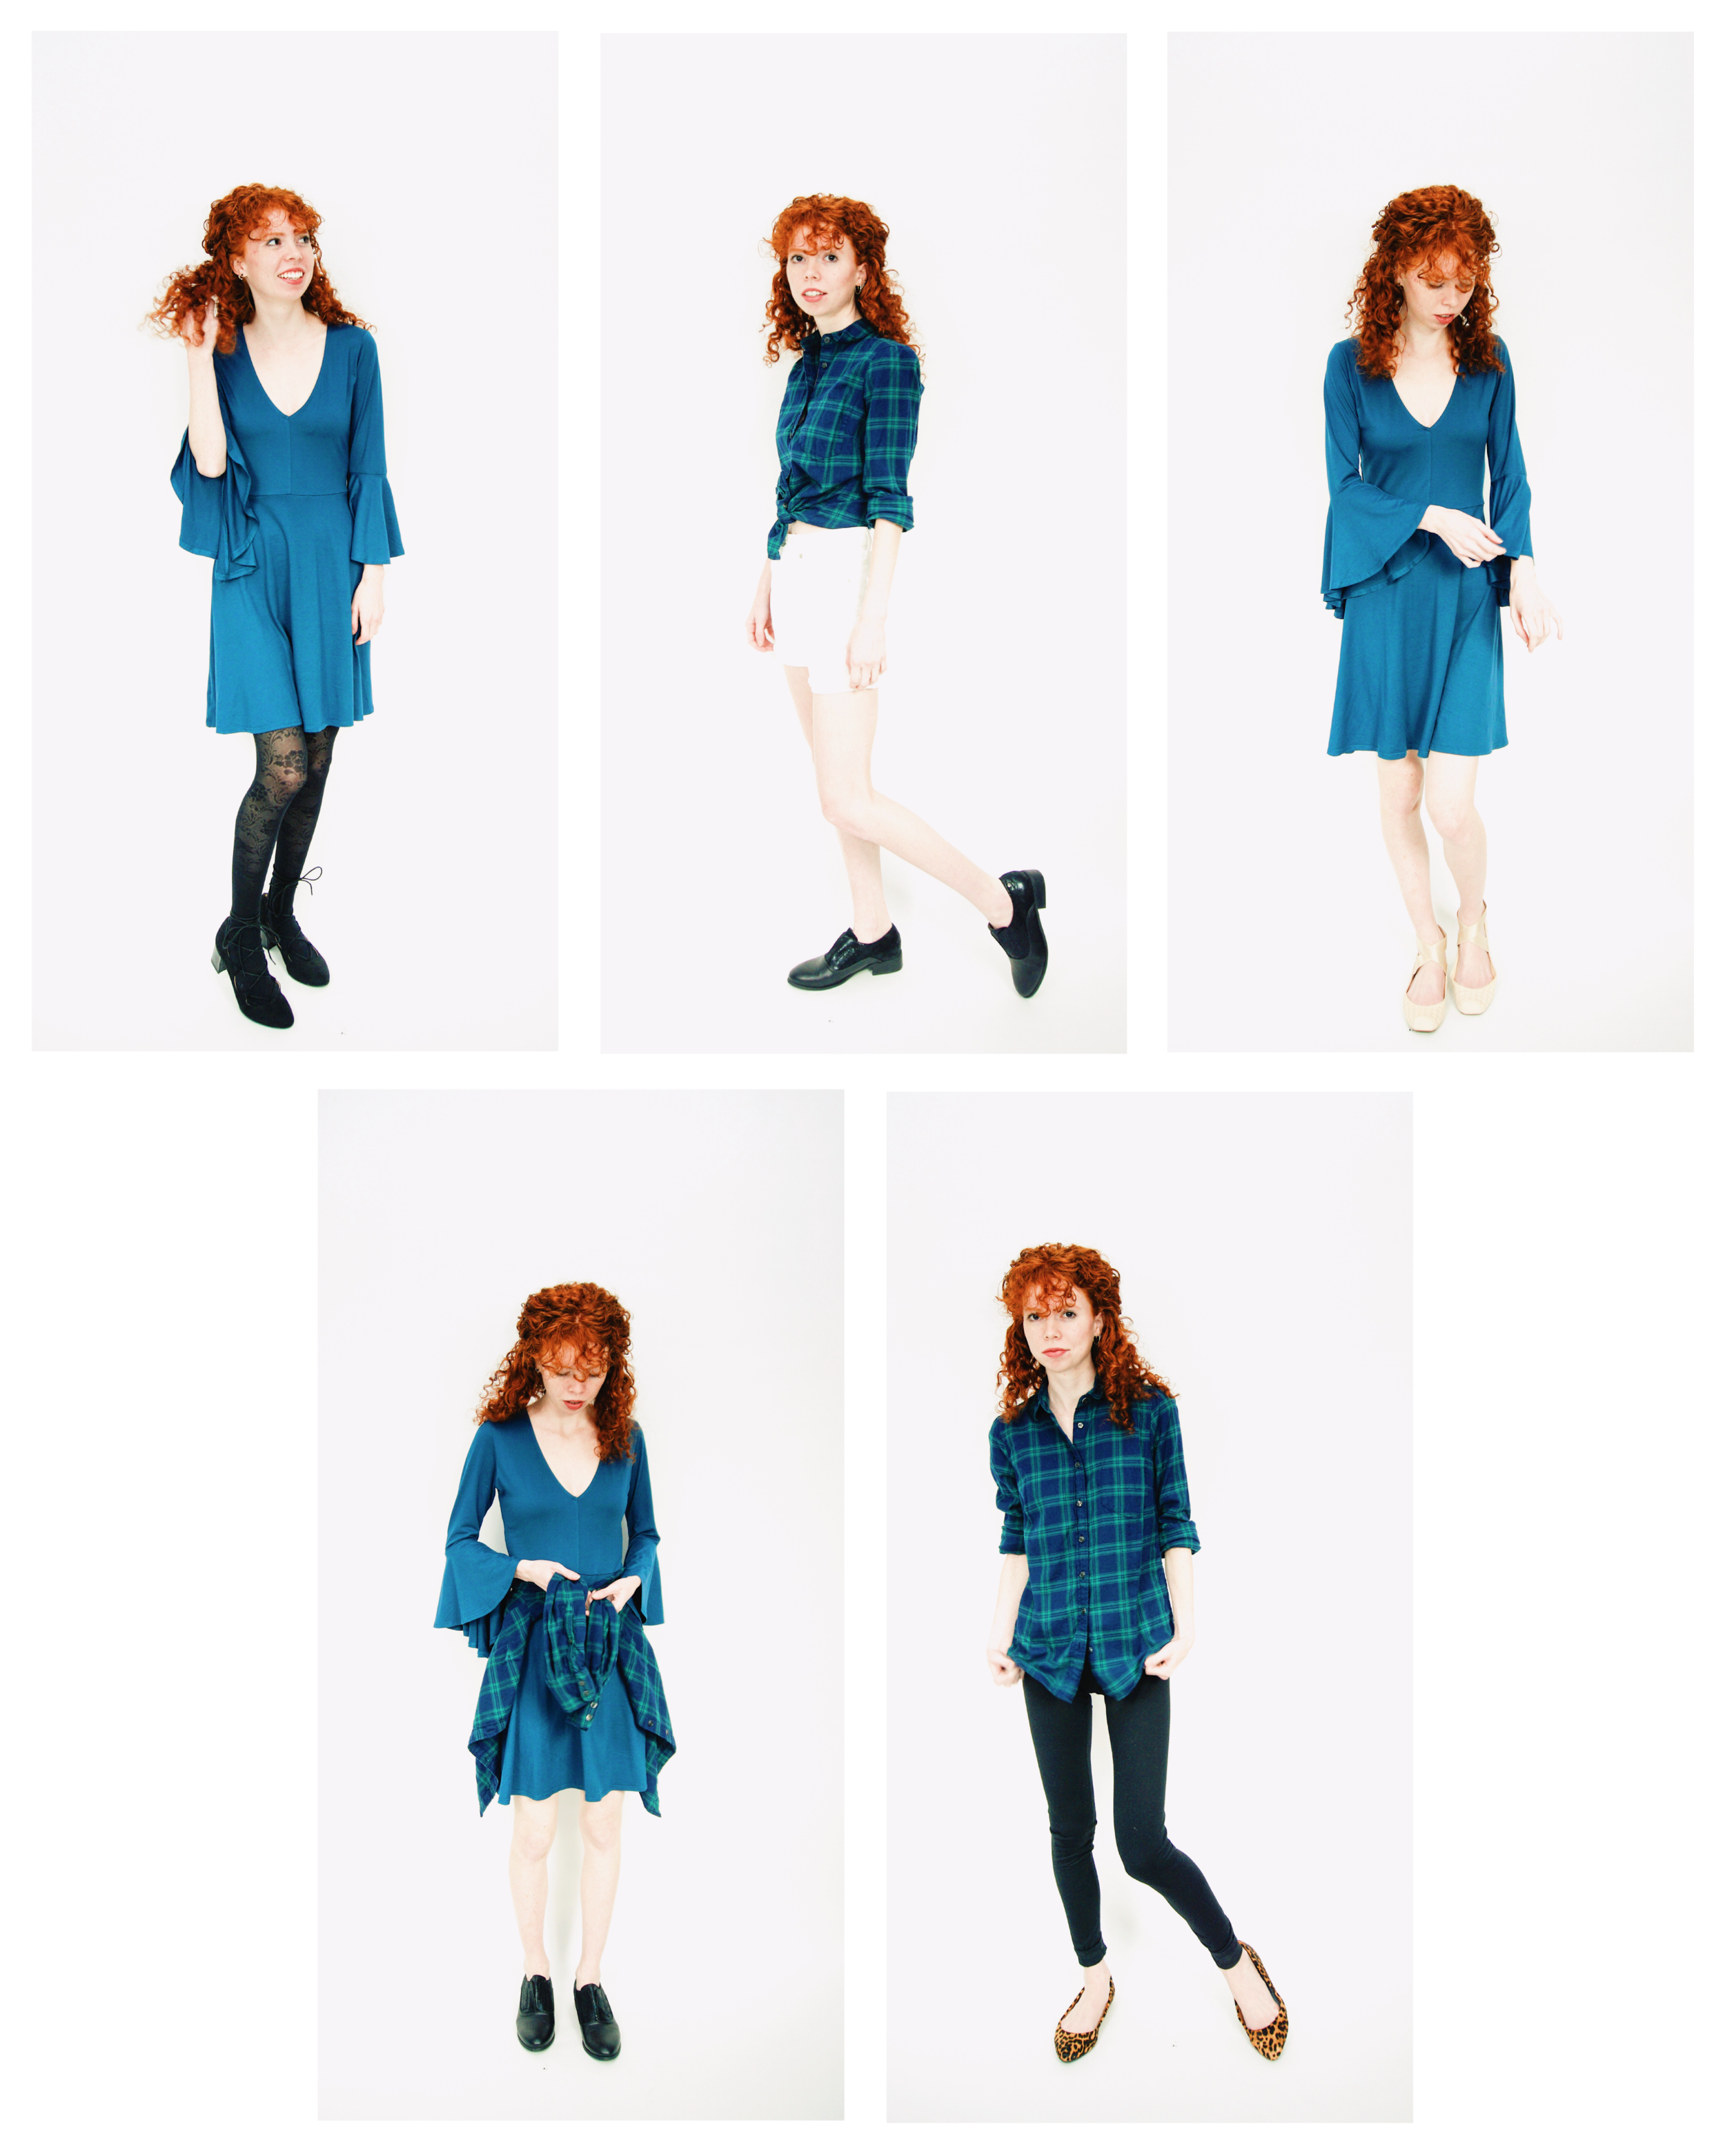 Pairing the trendy bell-sleeves with some wintery flannel and cozy leggings for a December 5x5 Capsule